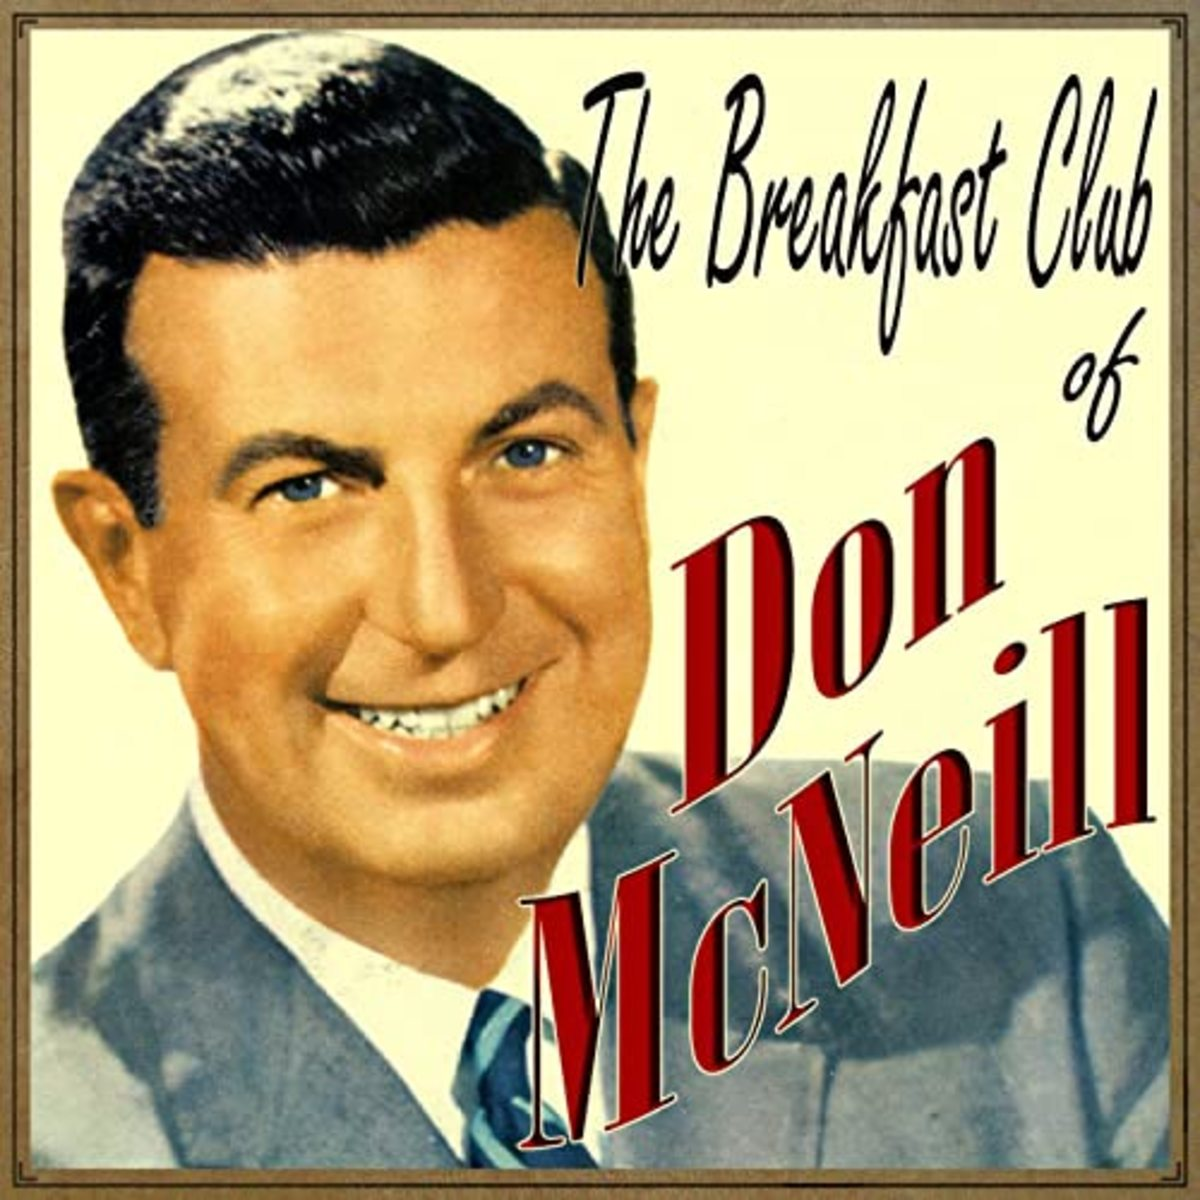 In 1966, Don McNeill's Breakfast Club was a popular morning variety show on the ABC radio network. (The Breakfast Club ran from June 23, 1933 through December 27, 1968.)